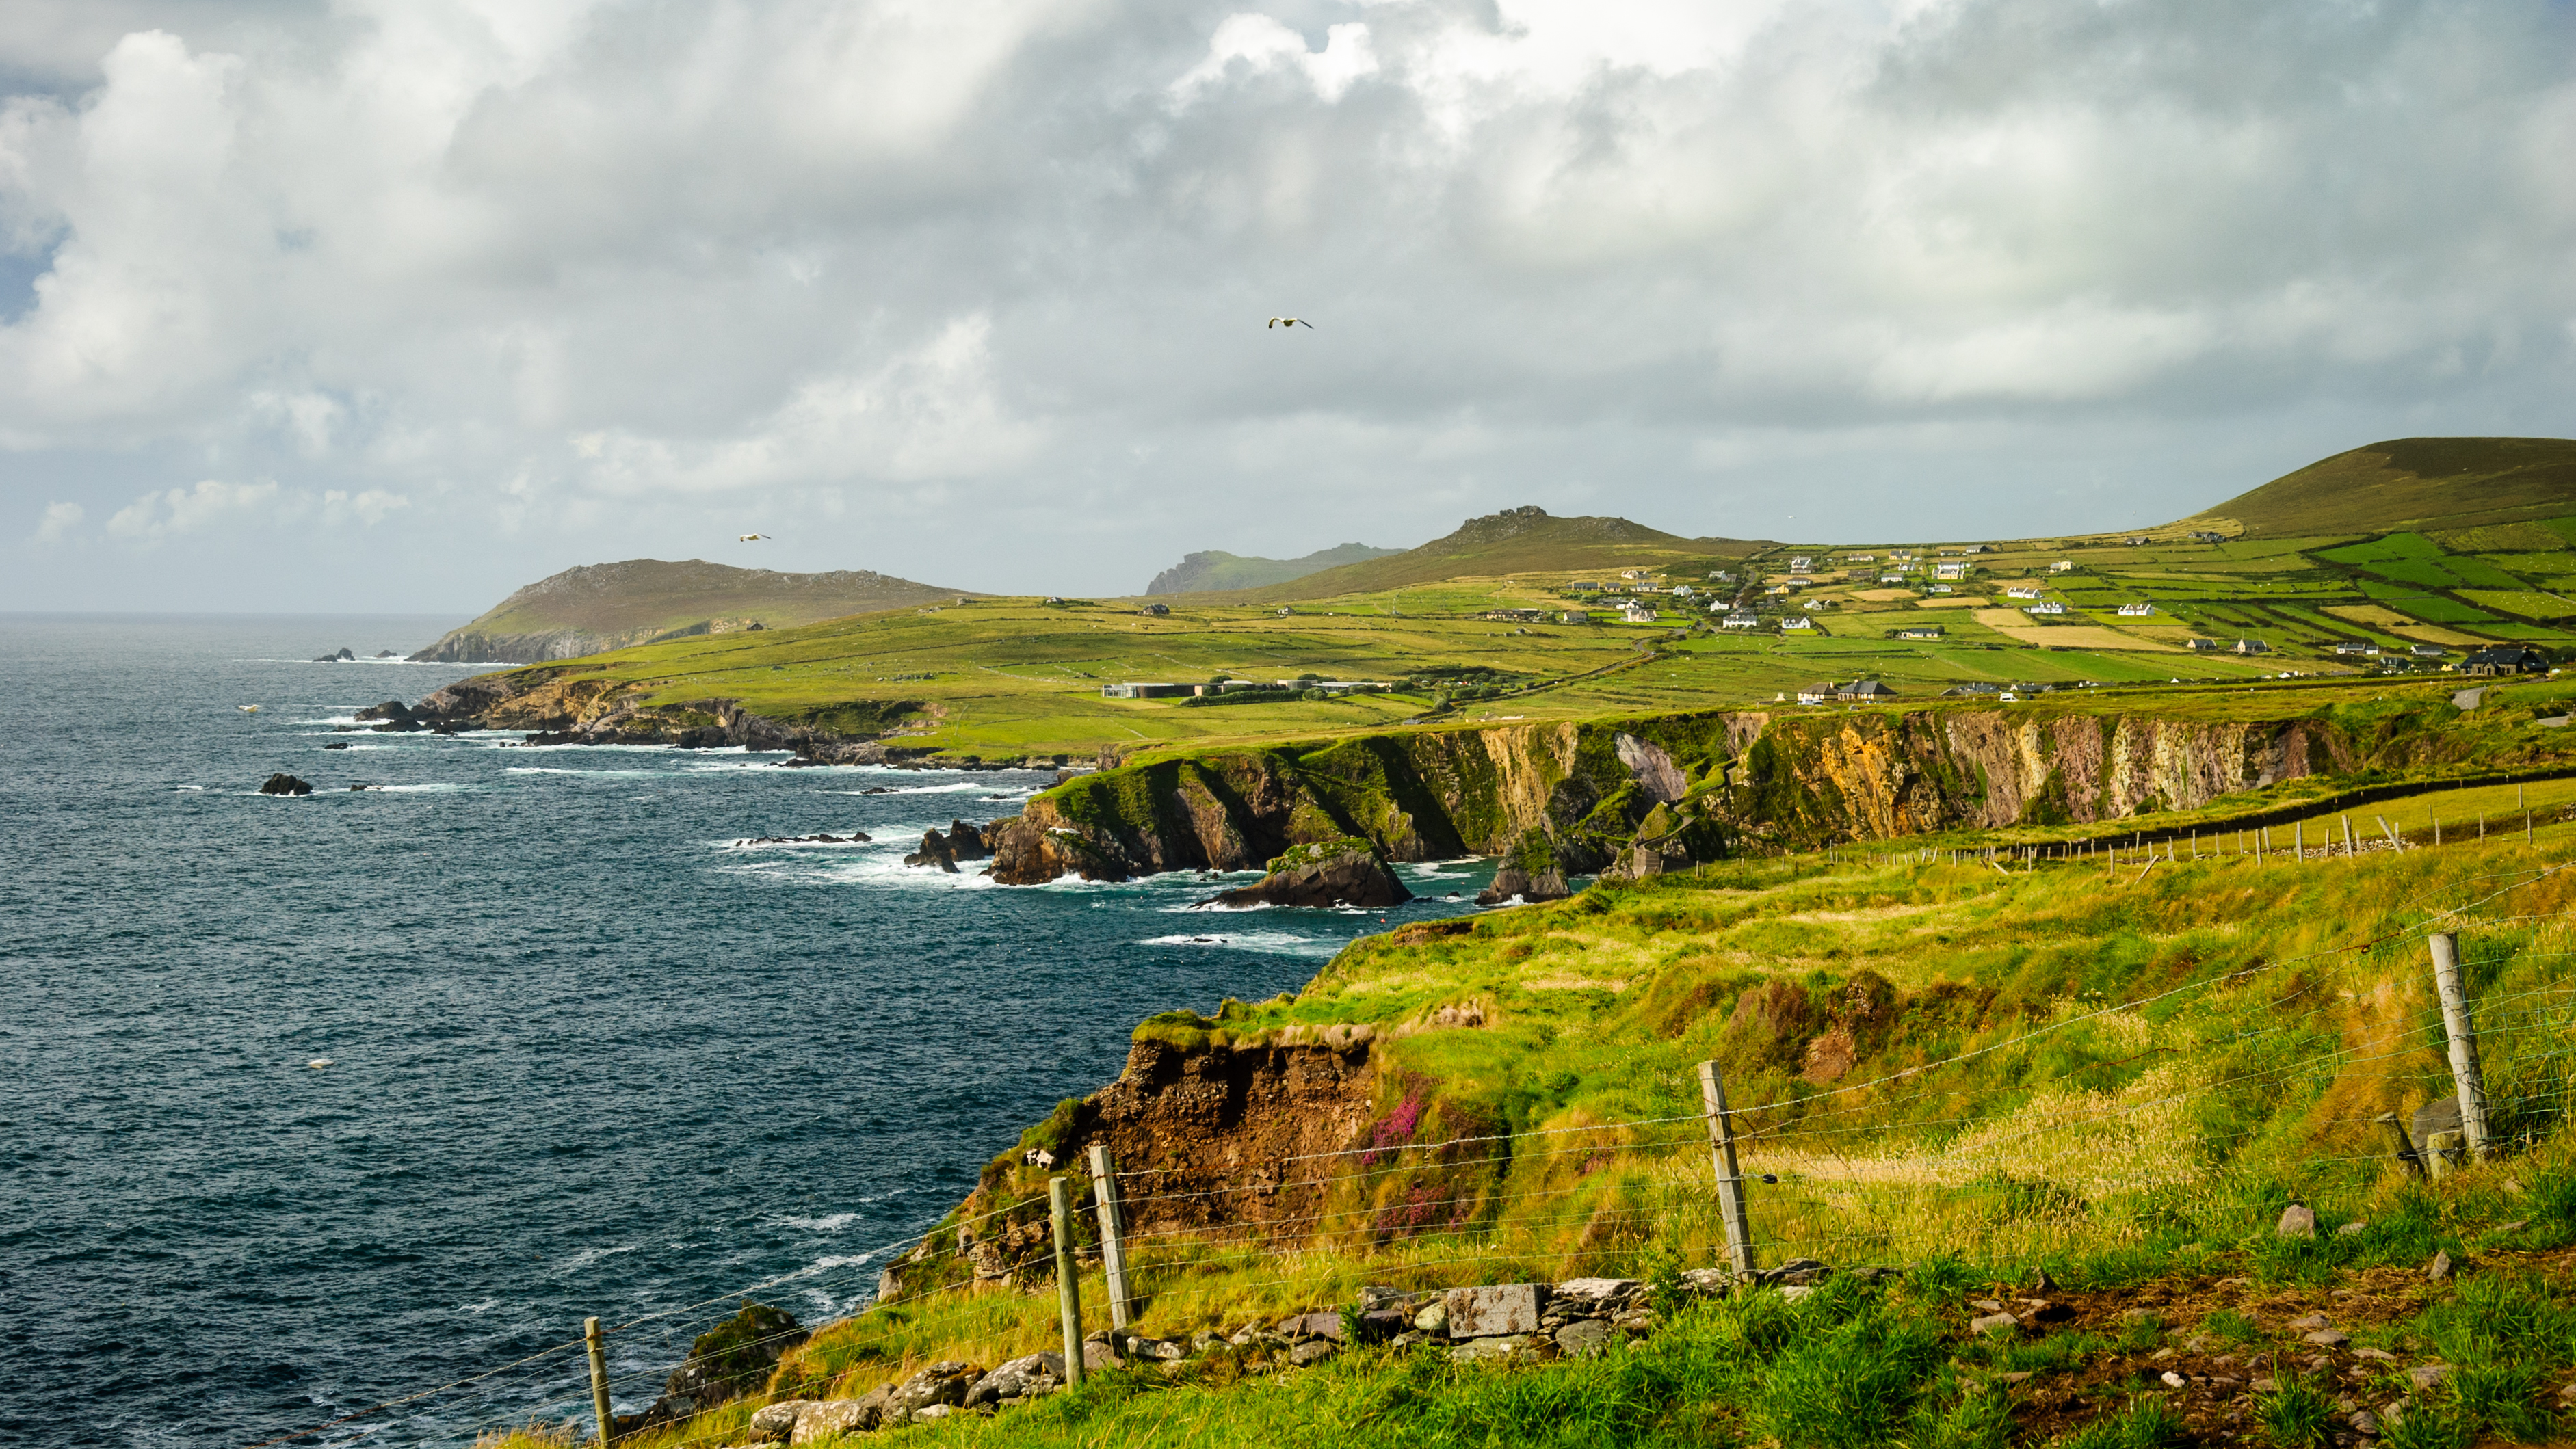 Ireland, Dingle Peninsula